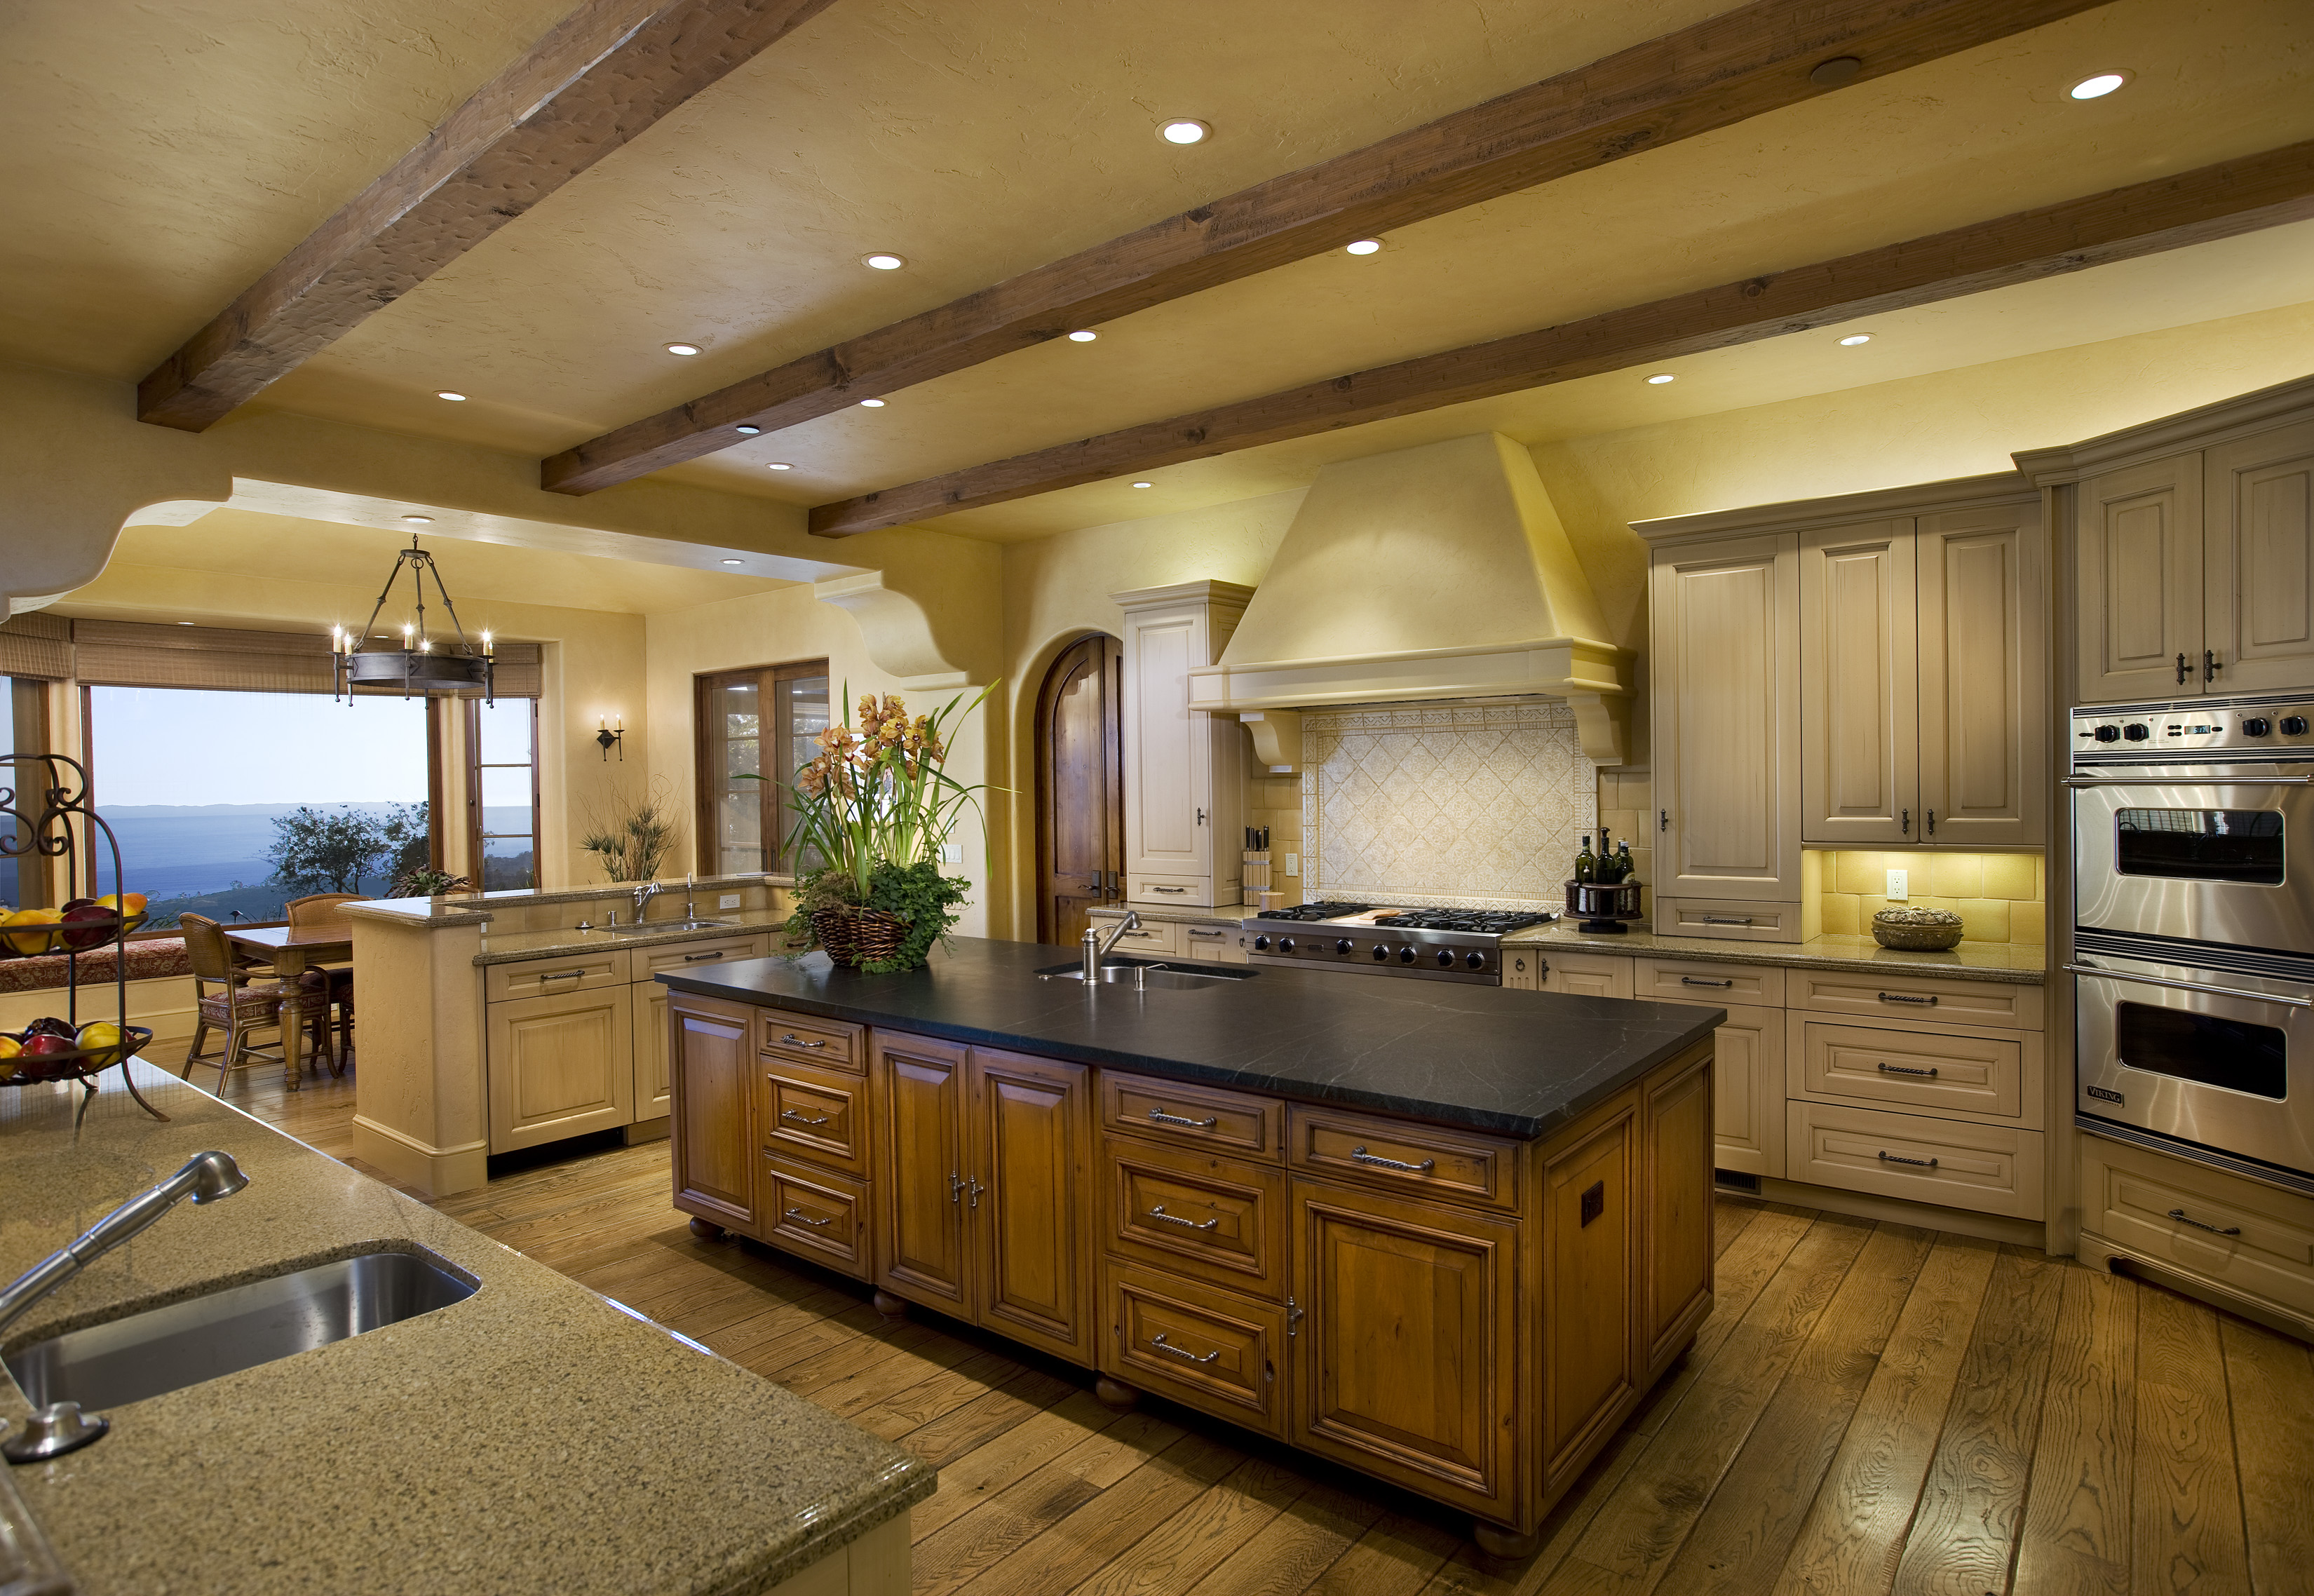 Beautiful Kitchen Cabinets My Dream Kitchens Kitchens Beautiful Beautiful Homes Beautiful Kitchen